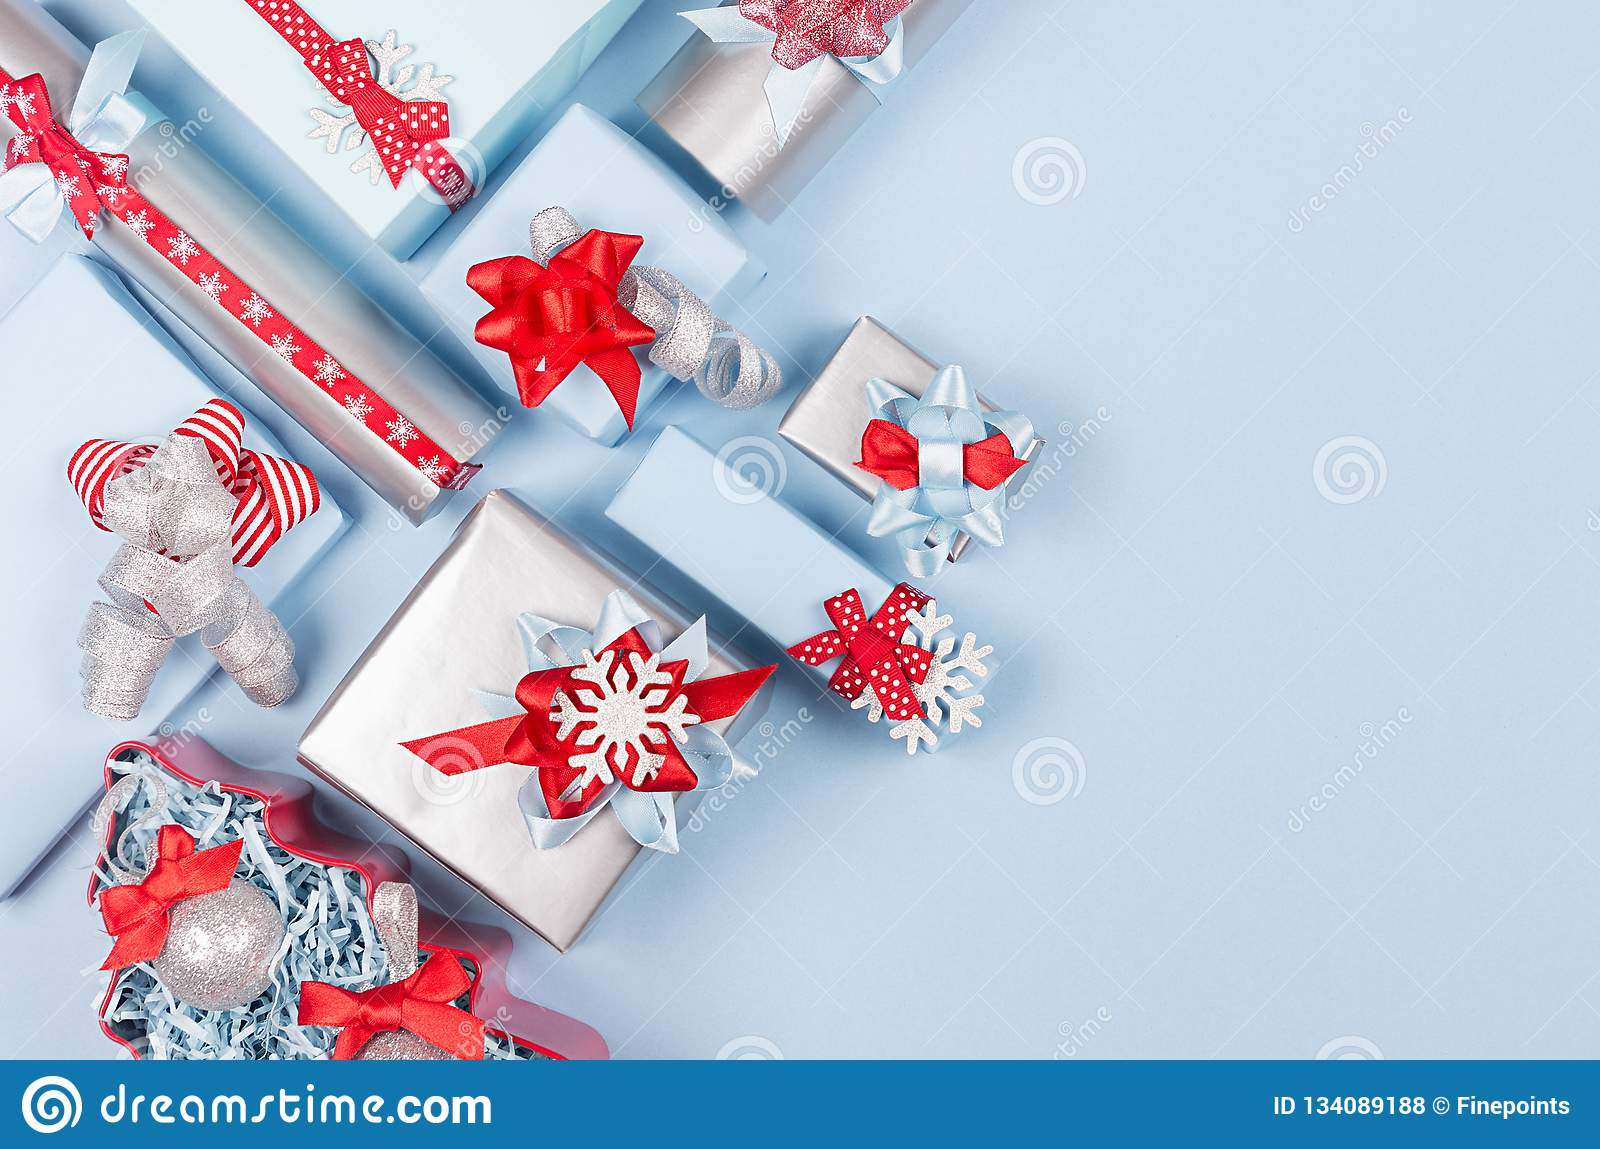 Rich bright winter season celebration background in red, pastel blue and silver color with different gift boxes.